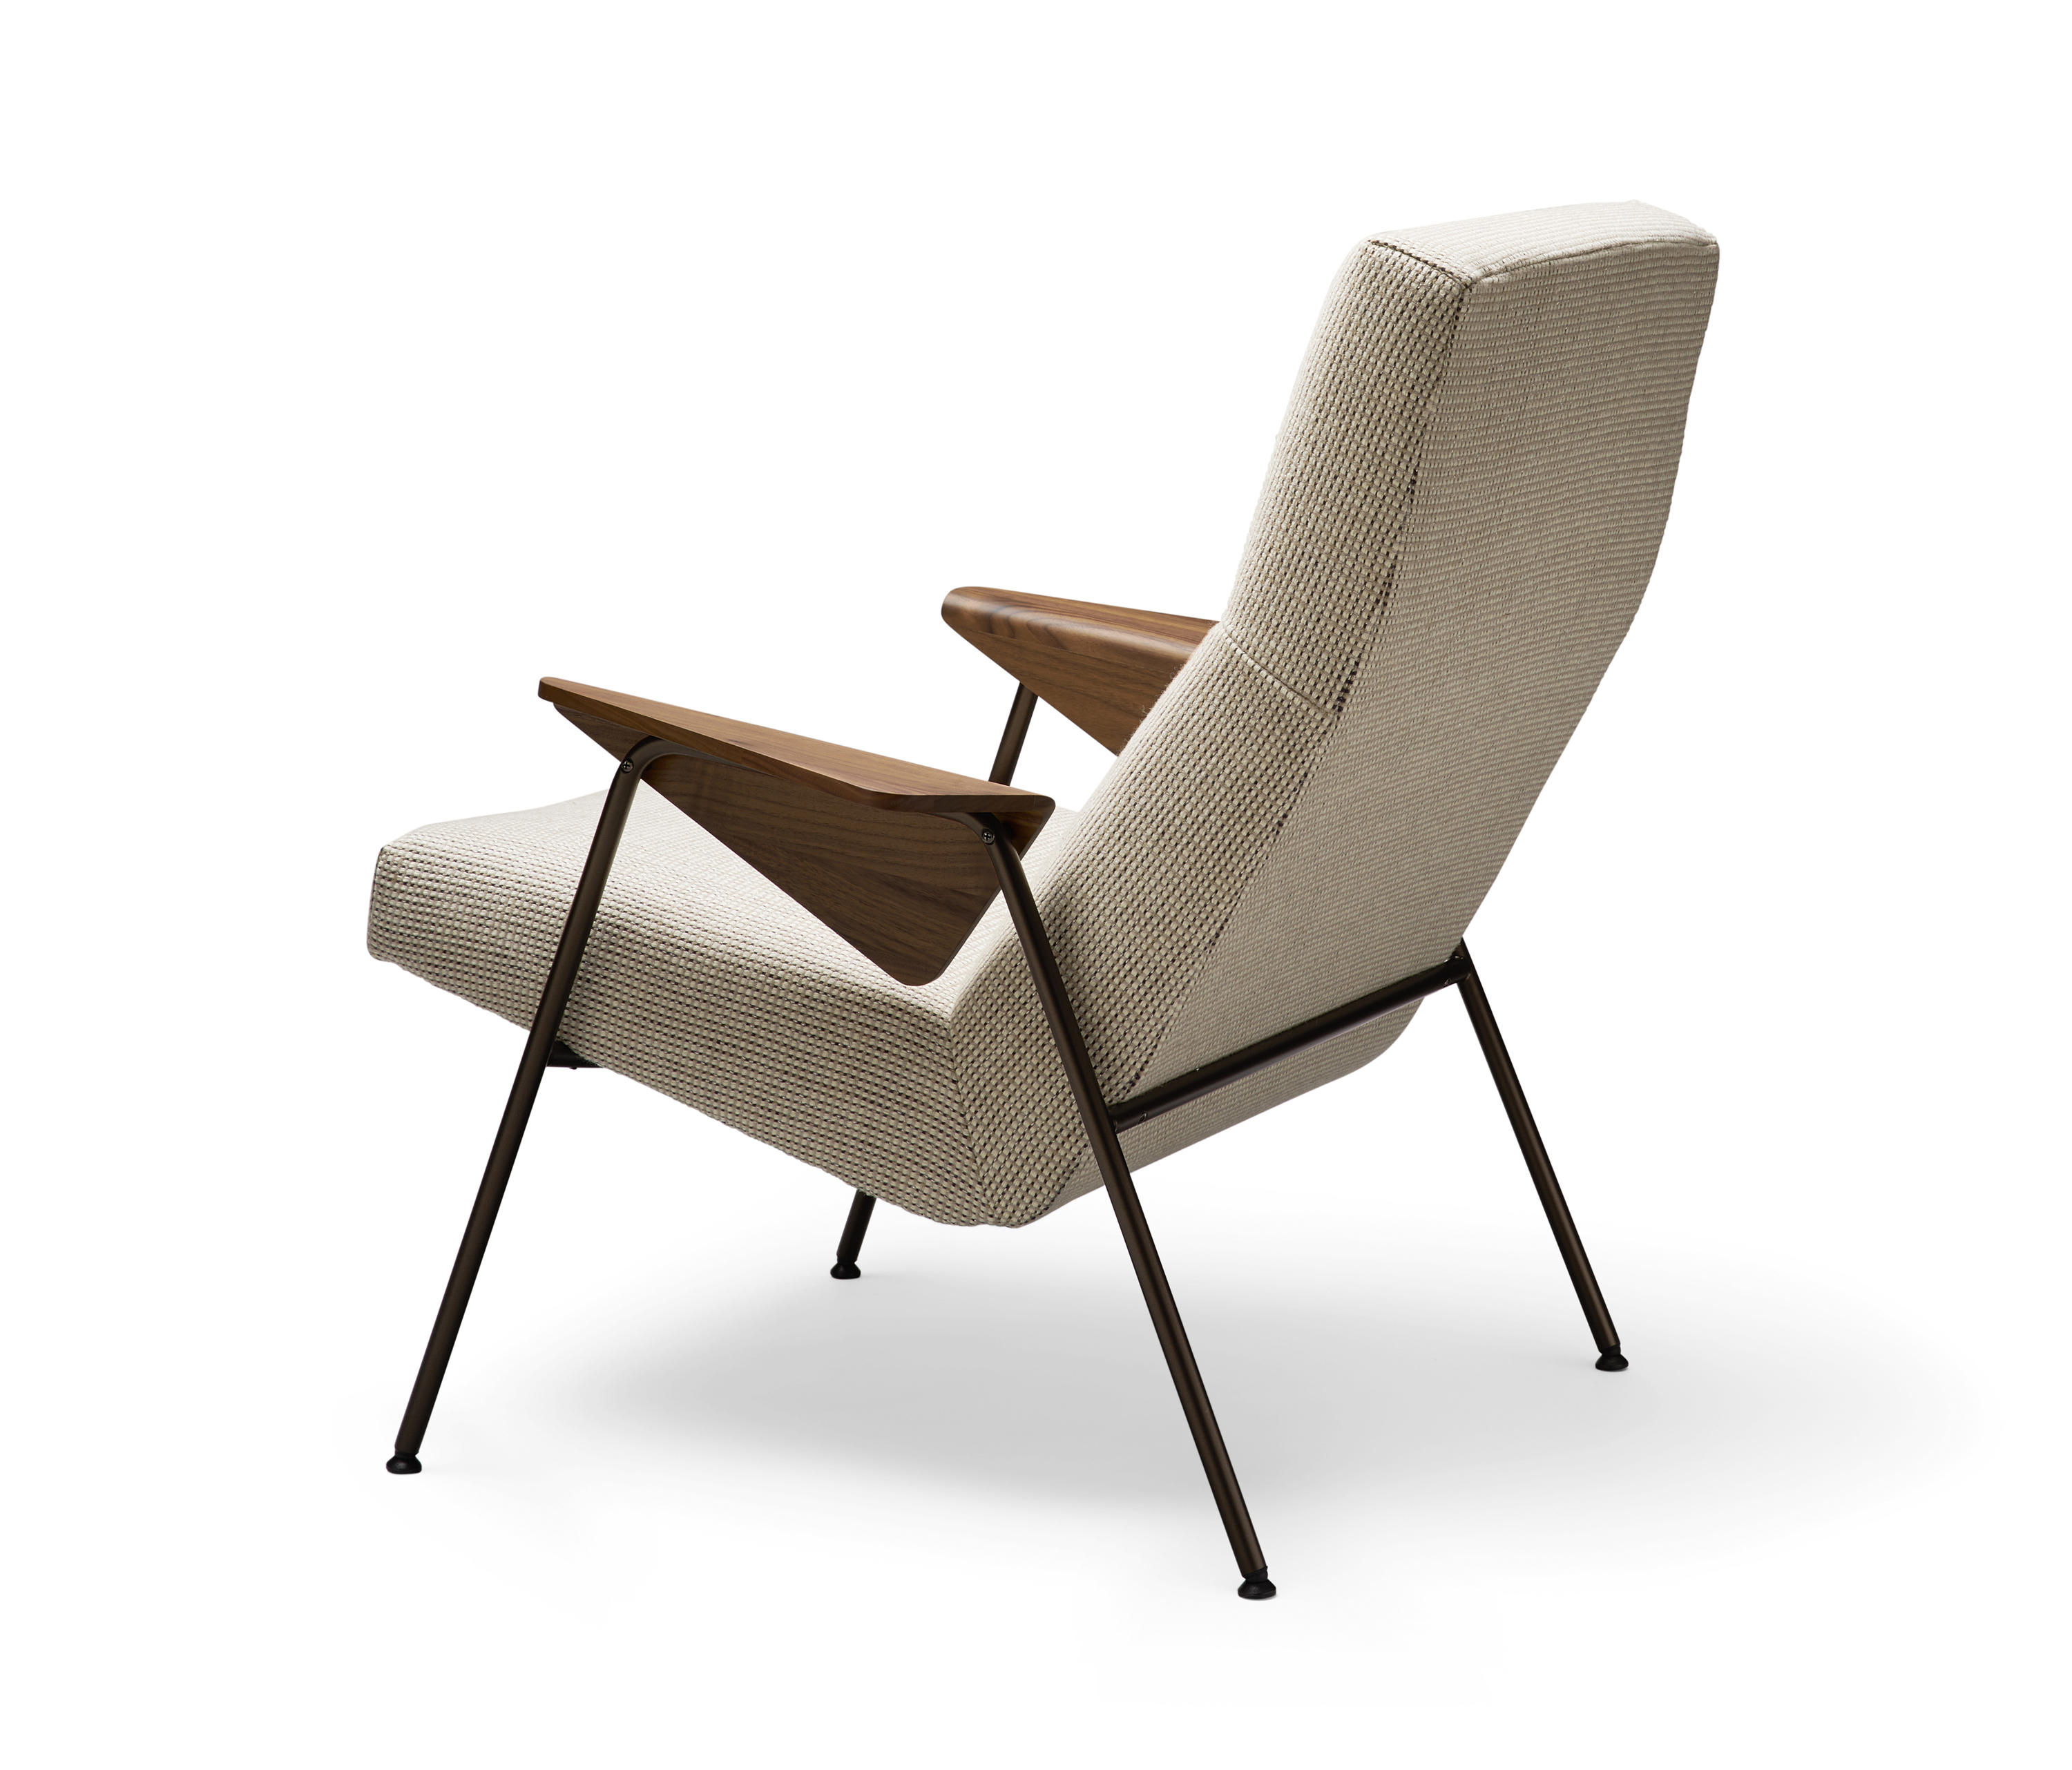 Votteler Chair Lounge Chairs From Walter Knoll Architonic